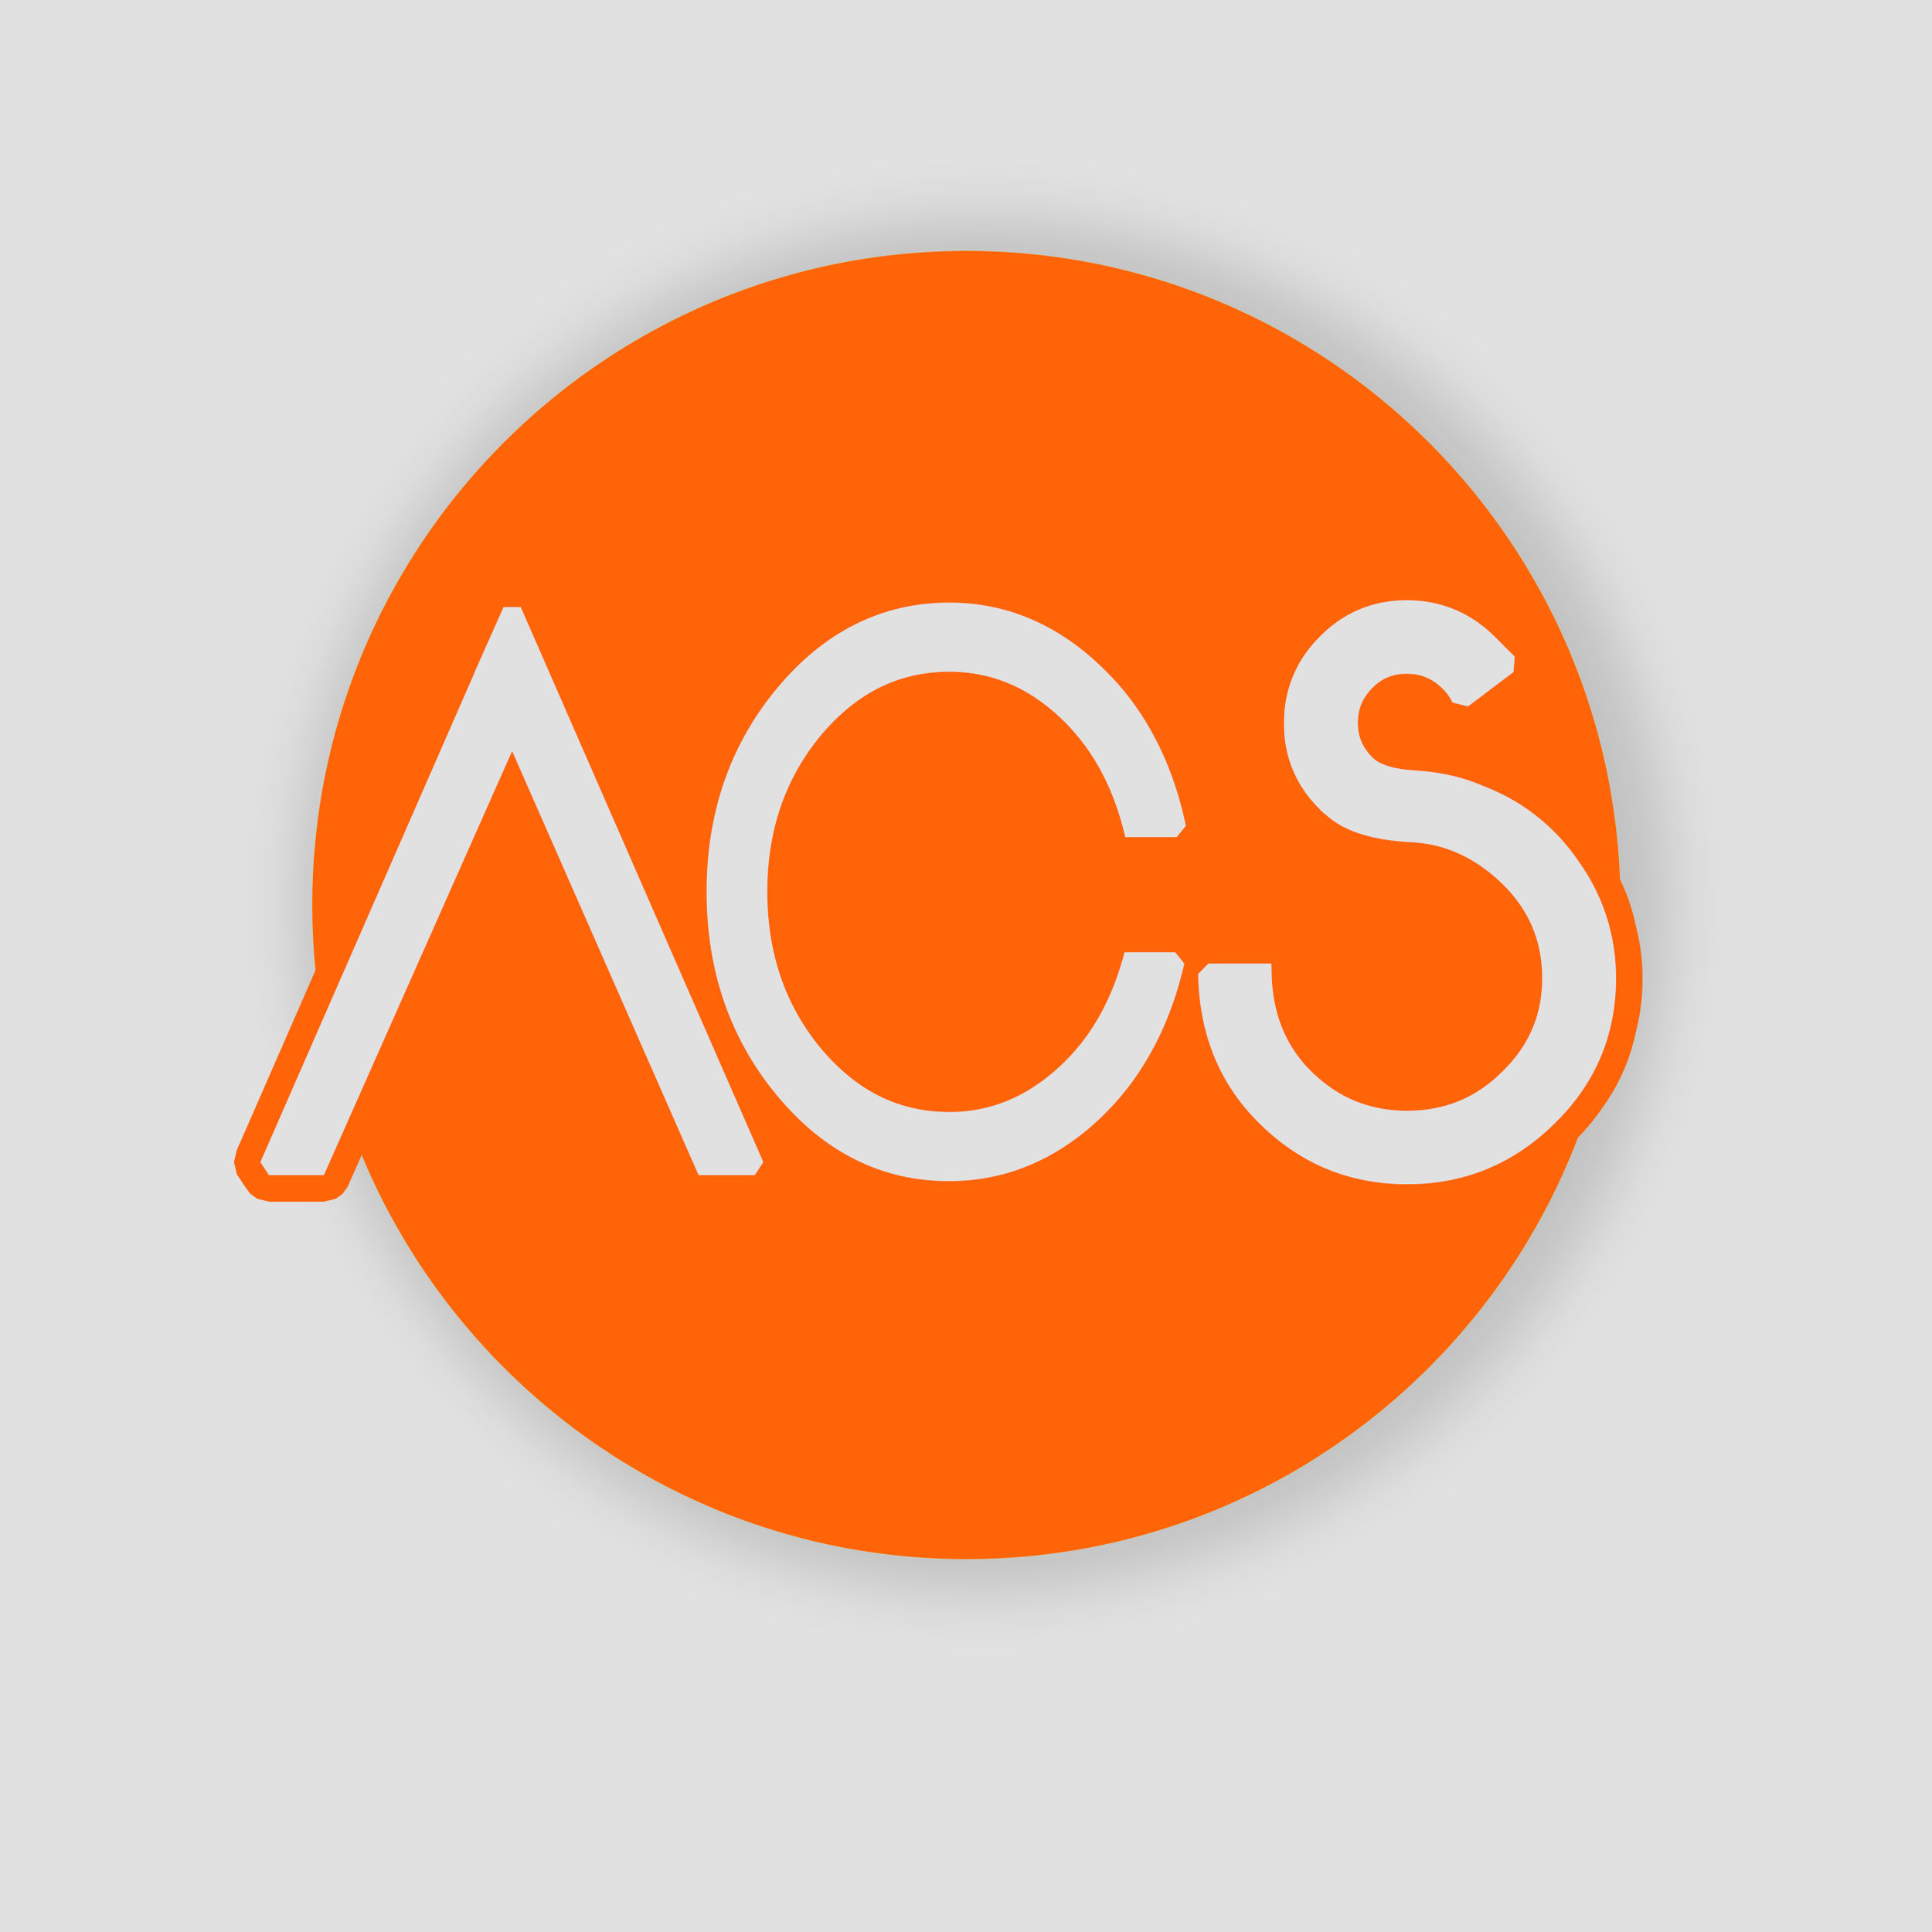 acs logo orange 2.jpg